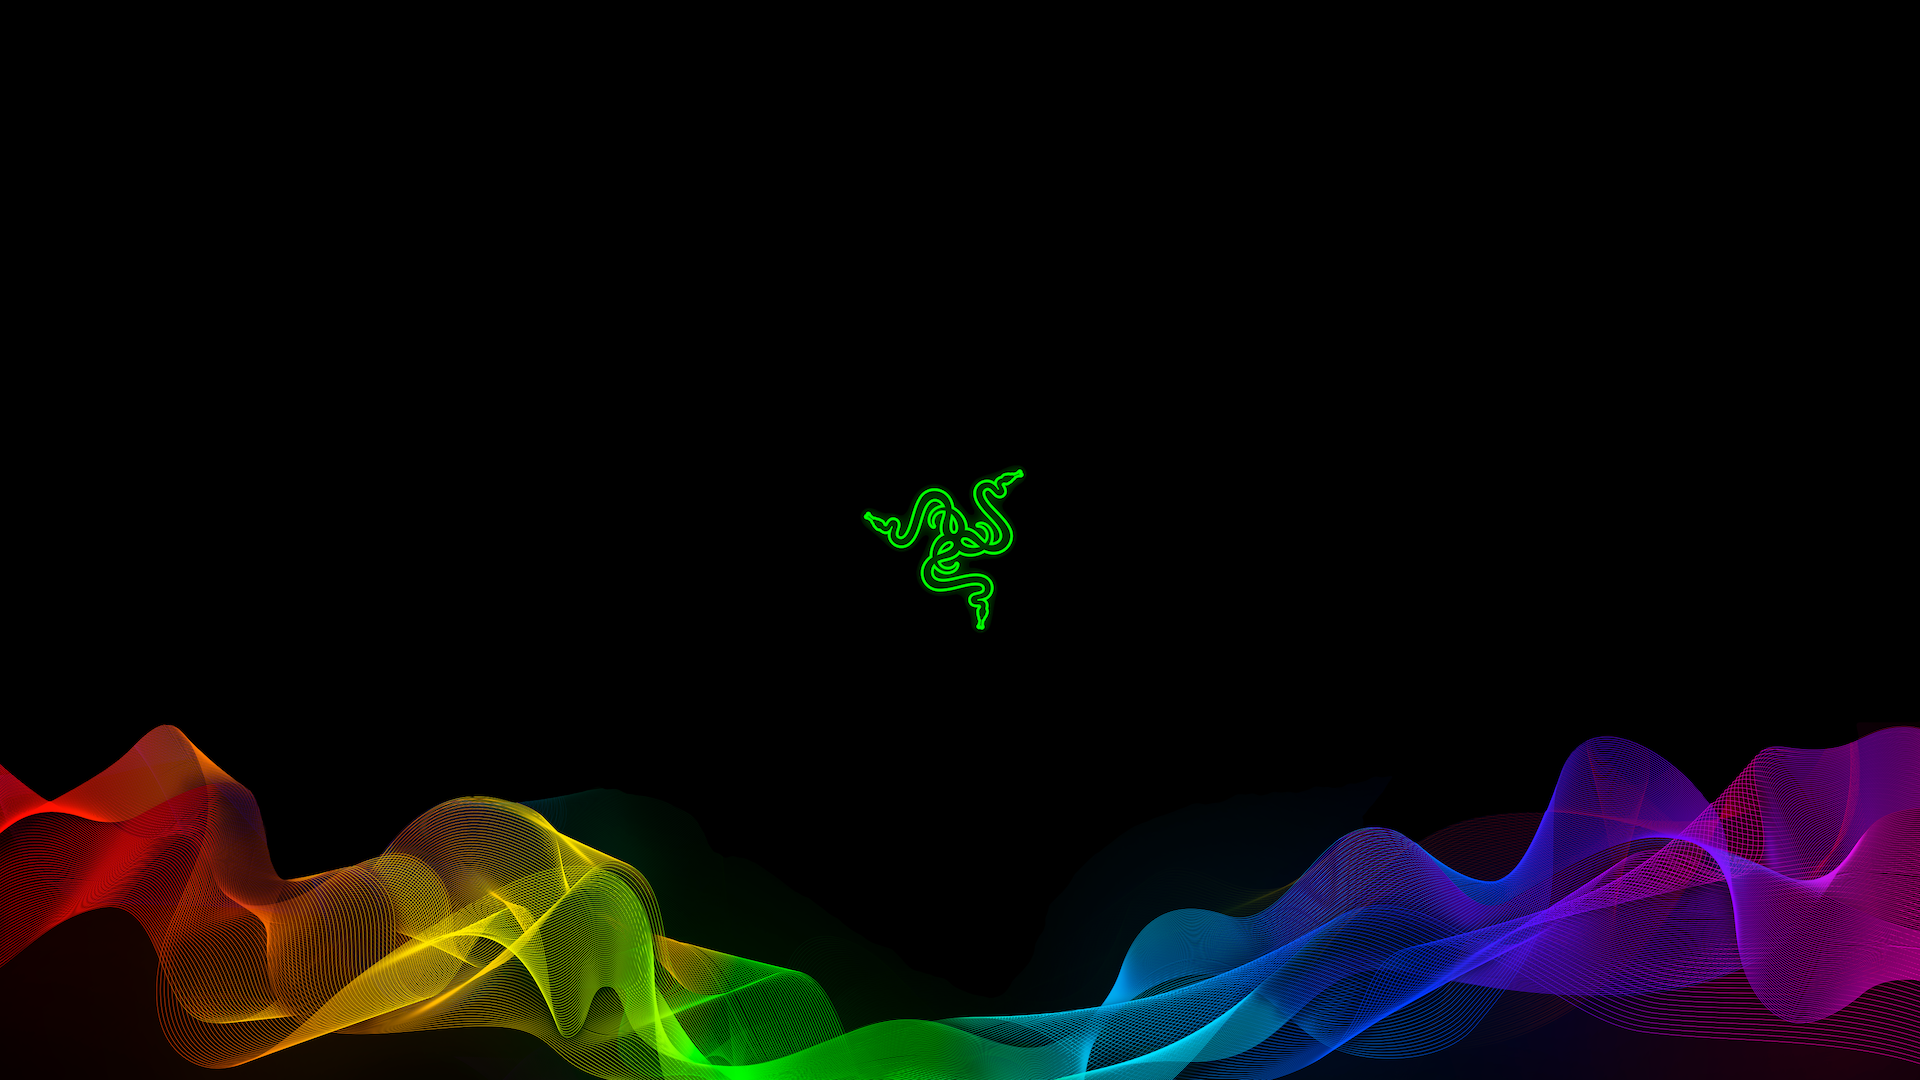 Razer Blade Stealth Background Wallpapers in 2019 Wallpaper 1920x1080